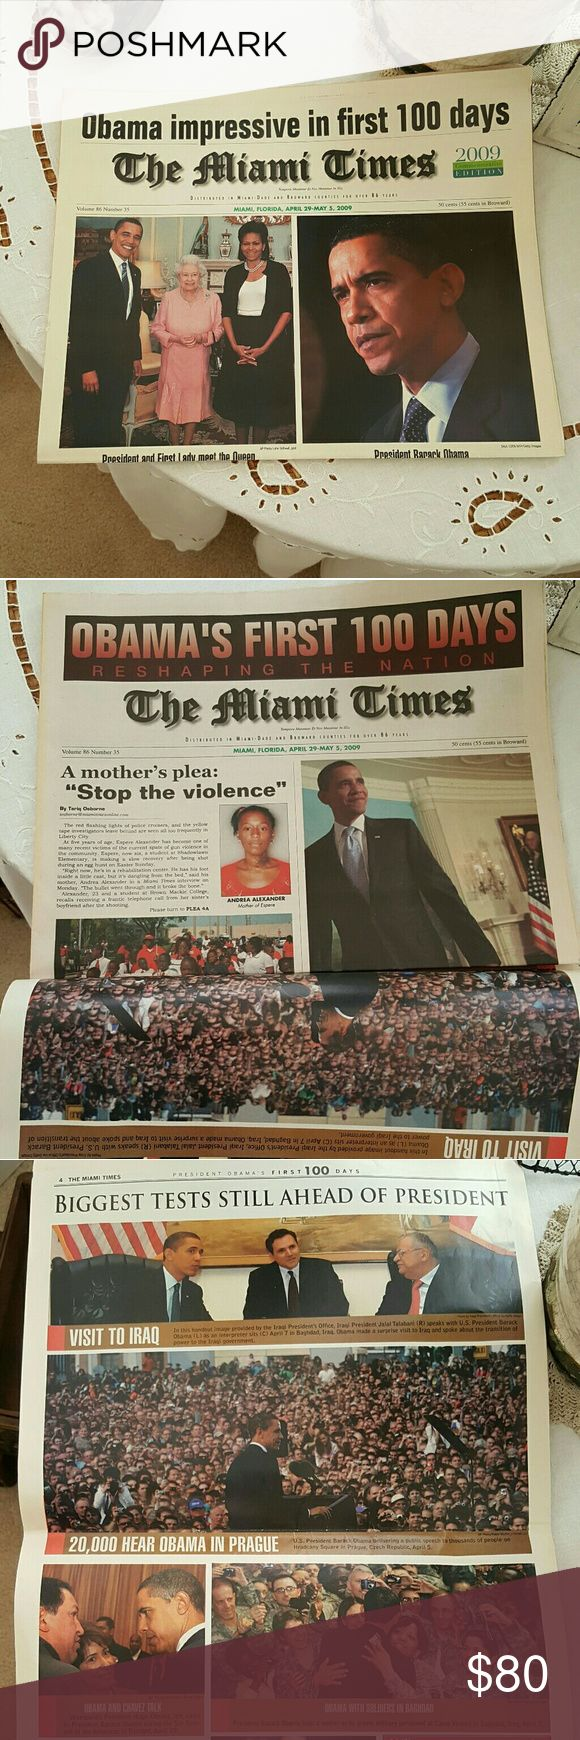 "The MIAMI TIMES, OBAMA'S FIRST 100 DAYS! Another piece of historical proportions.  Our first black president of the United States of America.  This one is a ""has to has"" newspaper.  Think of the future and the education having will bring to your children. They don't make these older newspapers as much and I feel will one day become obsolete. Other"